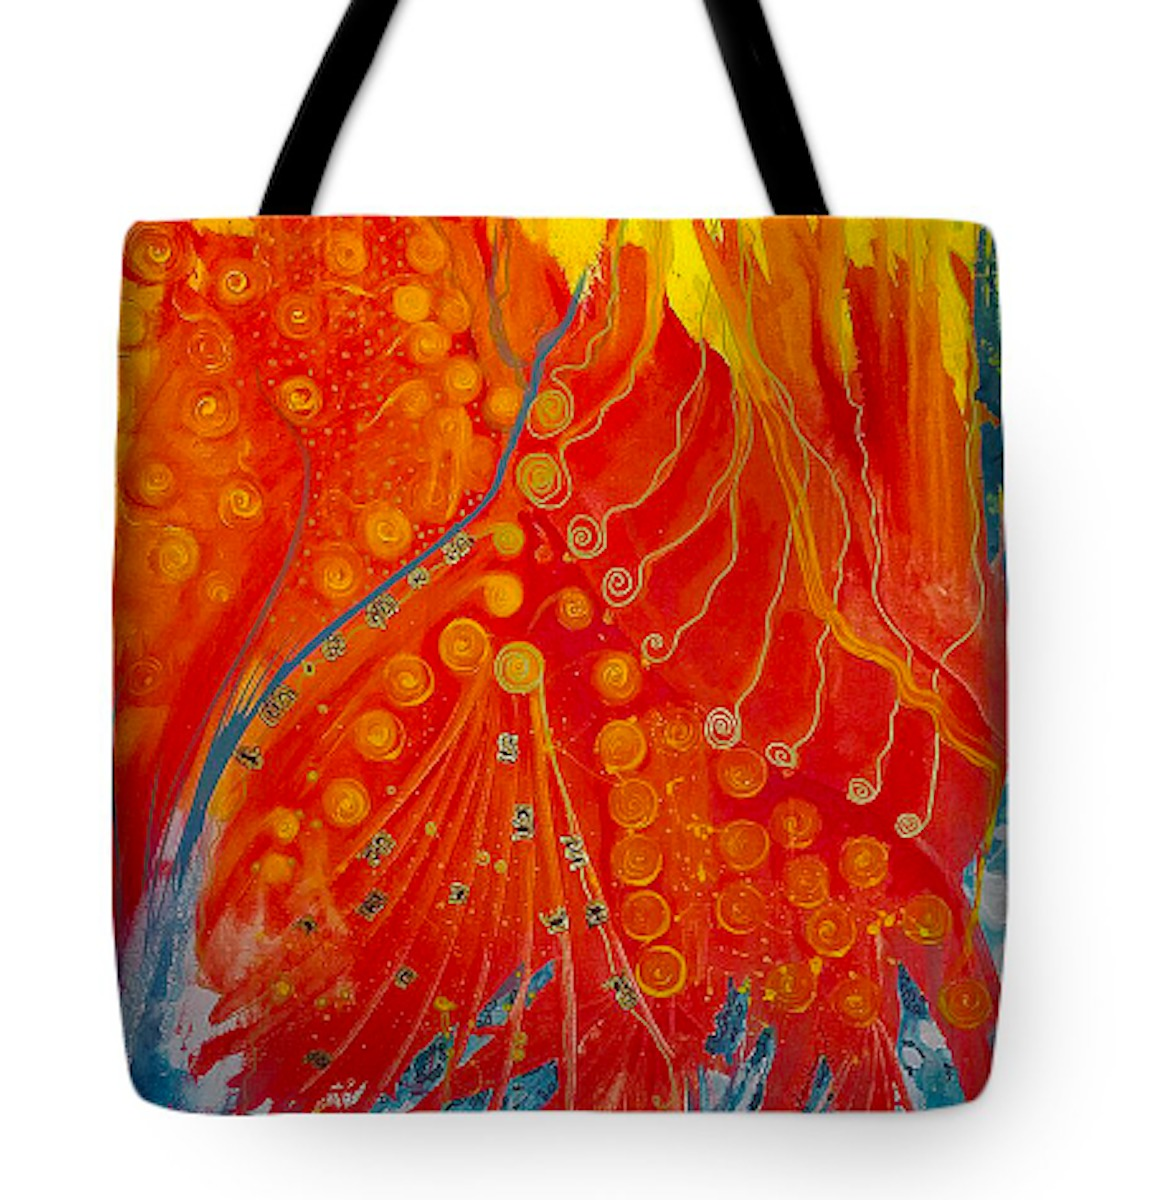 The Fire Peacock Tote Bag (large view)